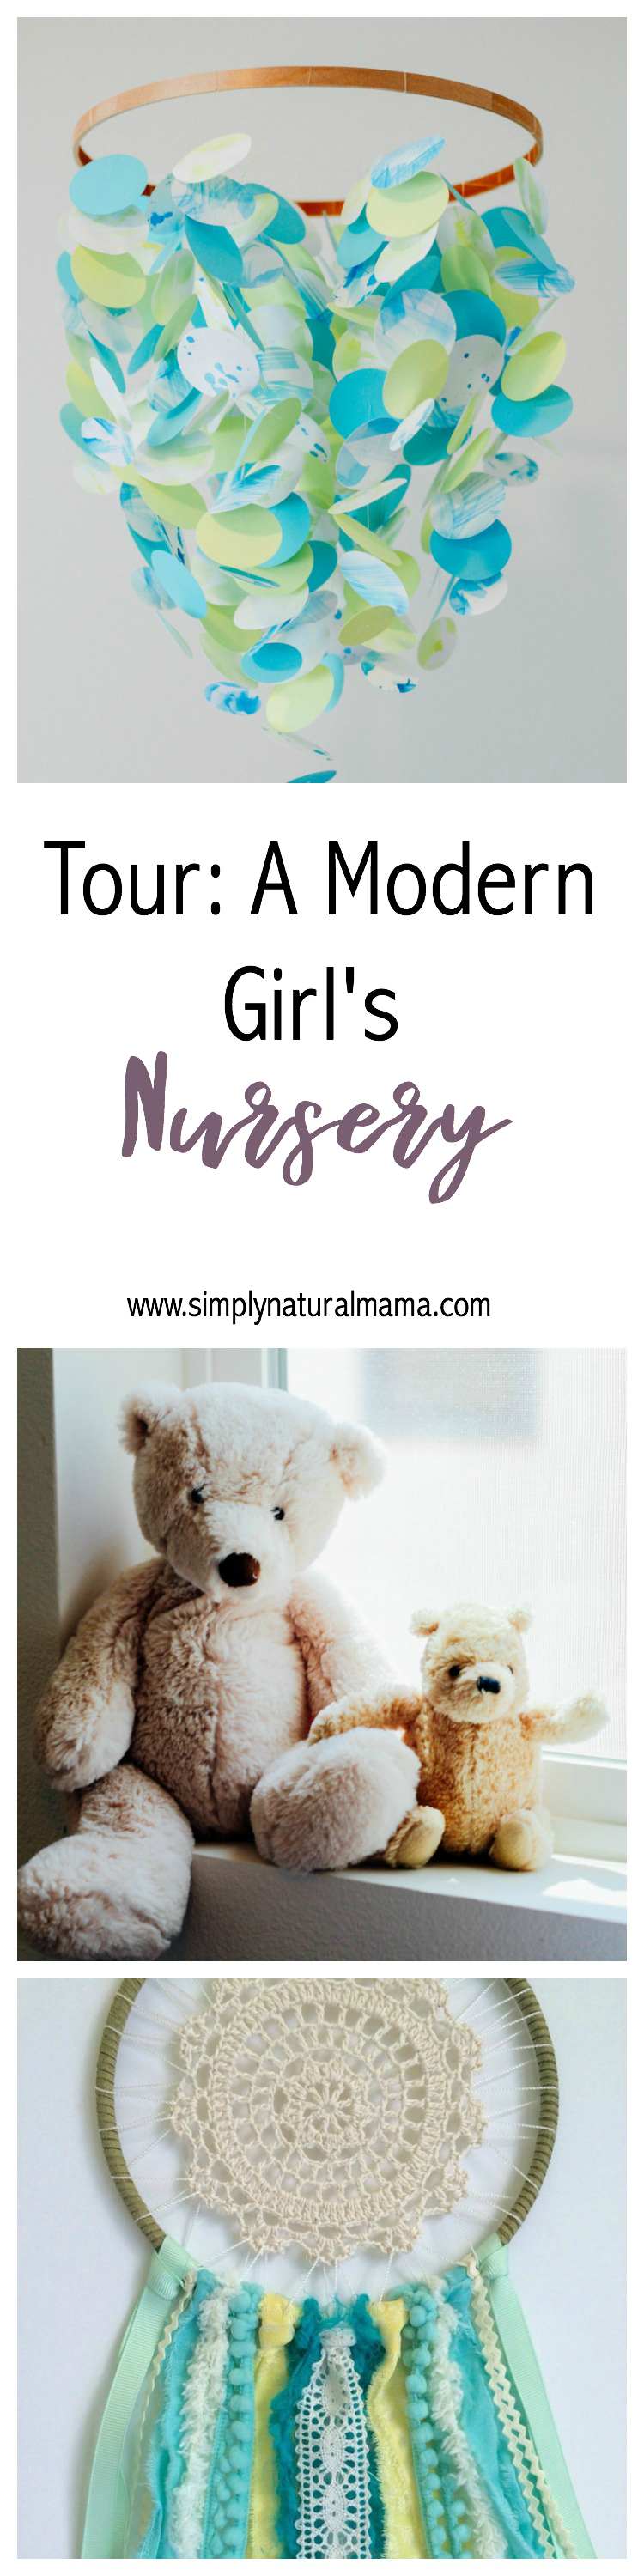 Aww! This is such a sweet and eclectic nursery. Must remember some of these items for my little one!